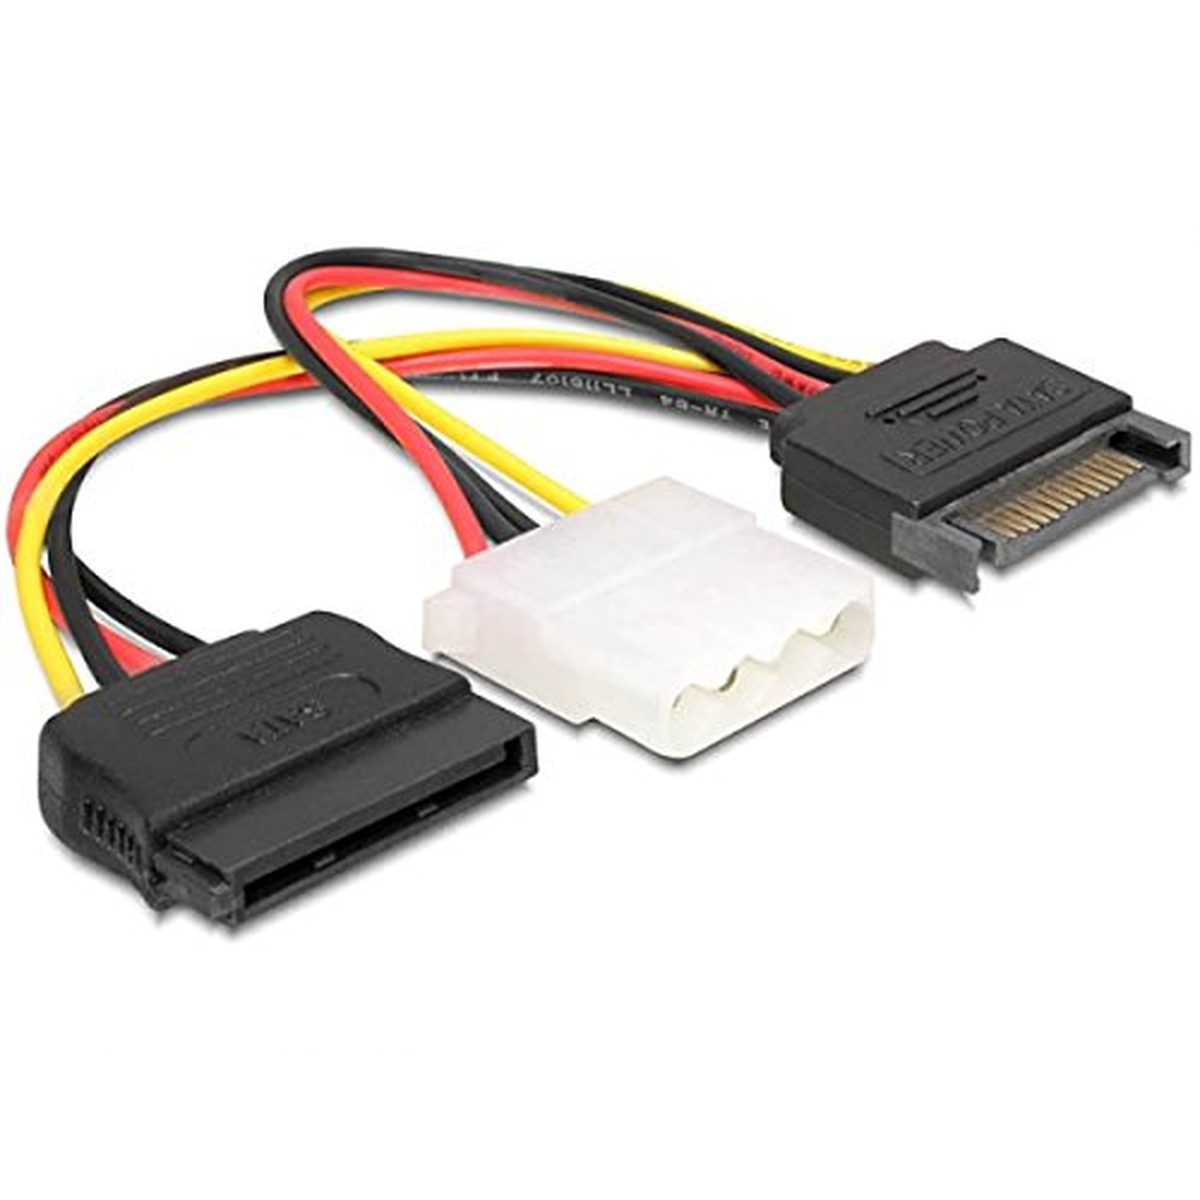 DeLOCK Kabel Power SATA 15pin>4pin+SATA 15pin